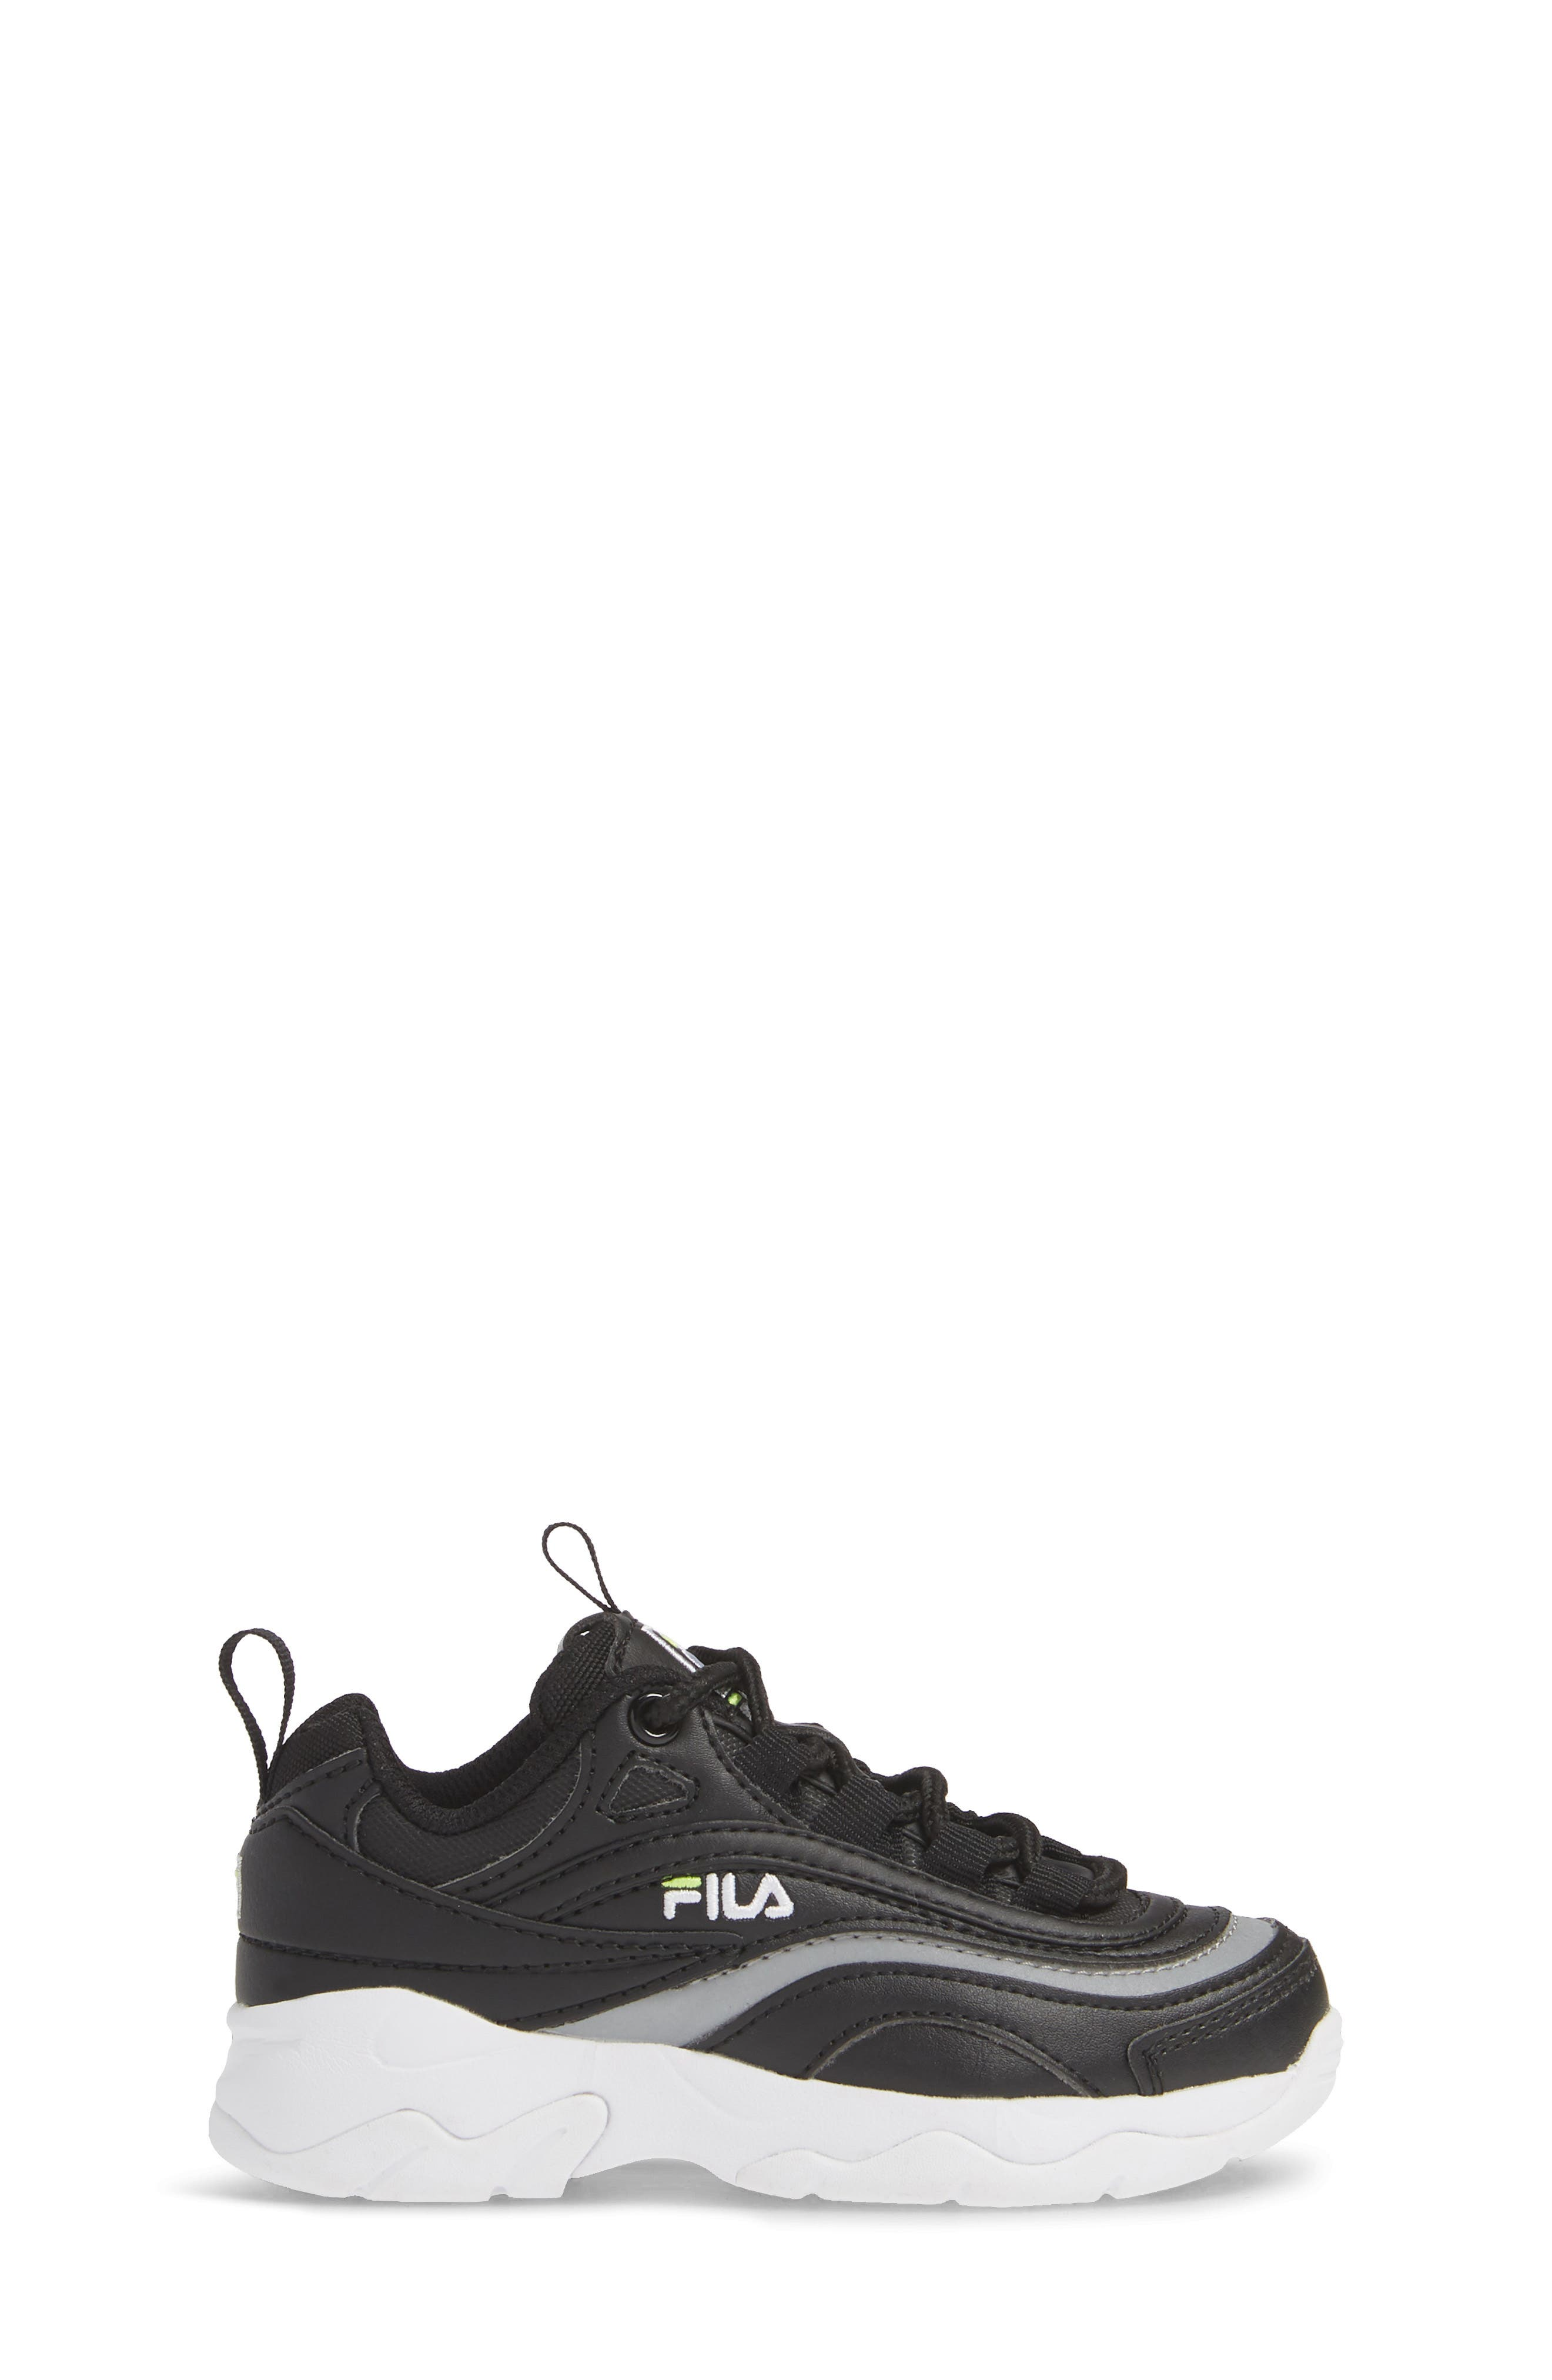 FILA, Ray Sneaker, Alternate thumbnail 3, color, BLACK/ SAFETY YELLOW/ SILVER